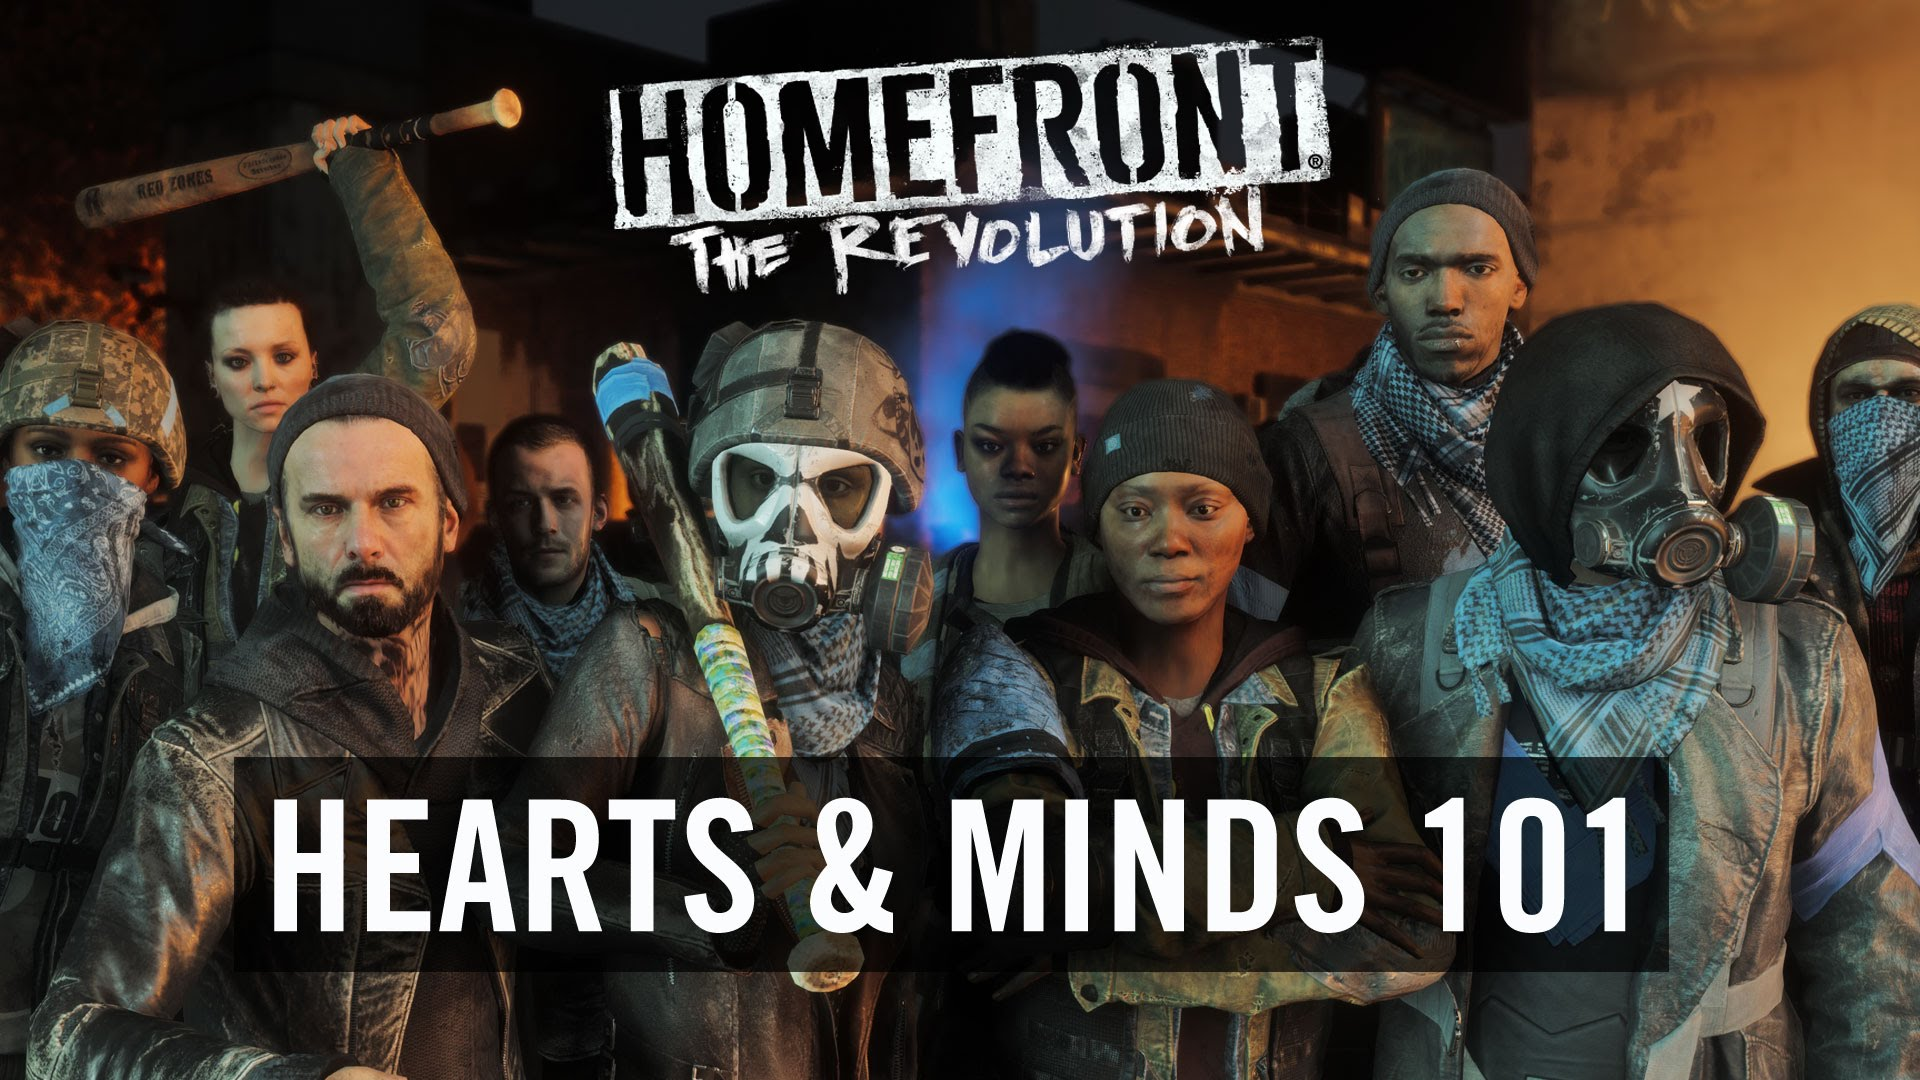 Homefront: The Revolution 'Hearts and Minds 101'